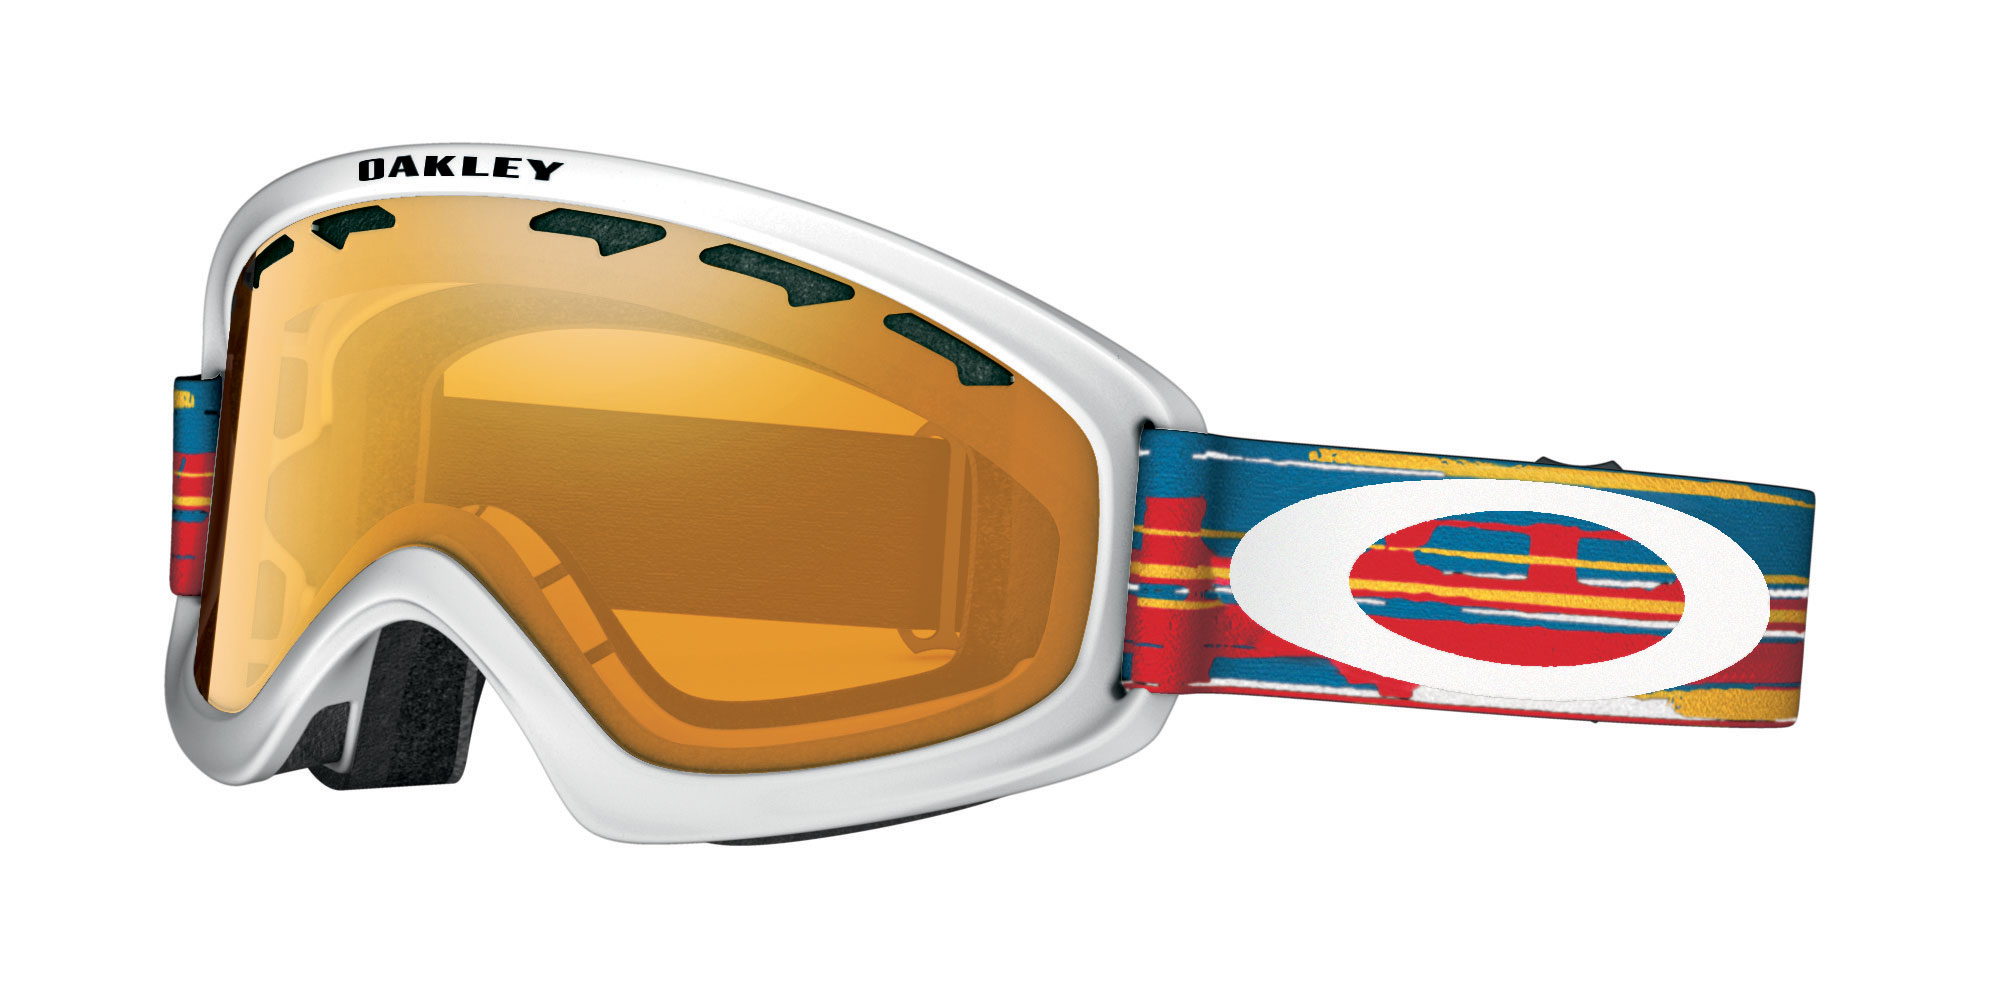 Gogle snow OAKLEY O2 XS Ripped'n'Torn Red / Persimmon 59-583